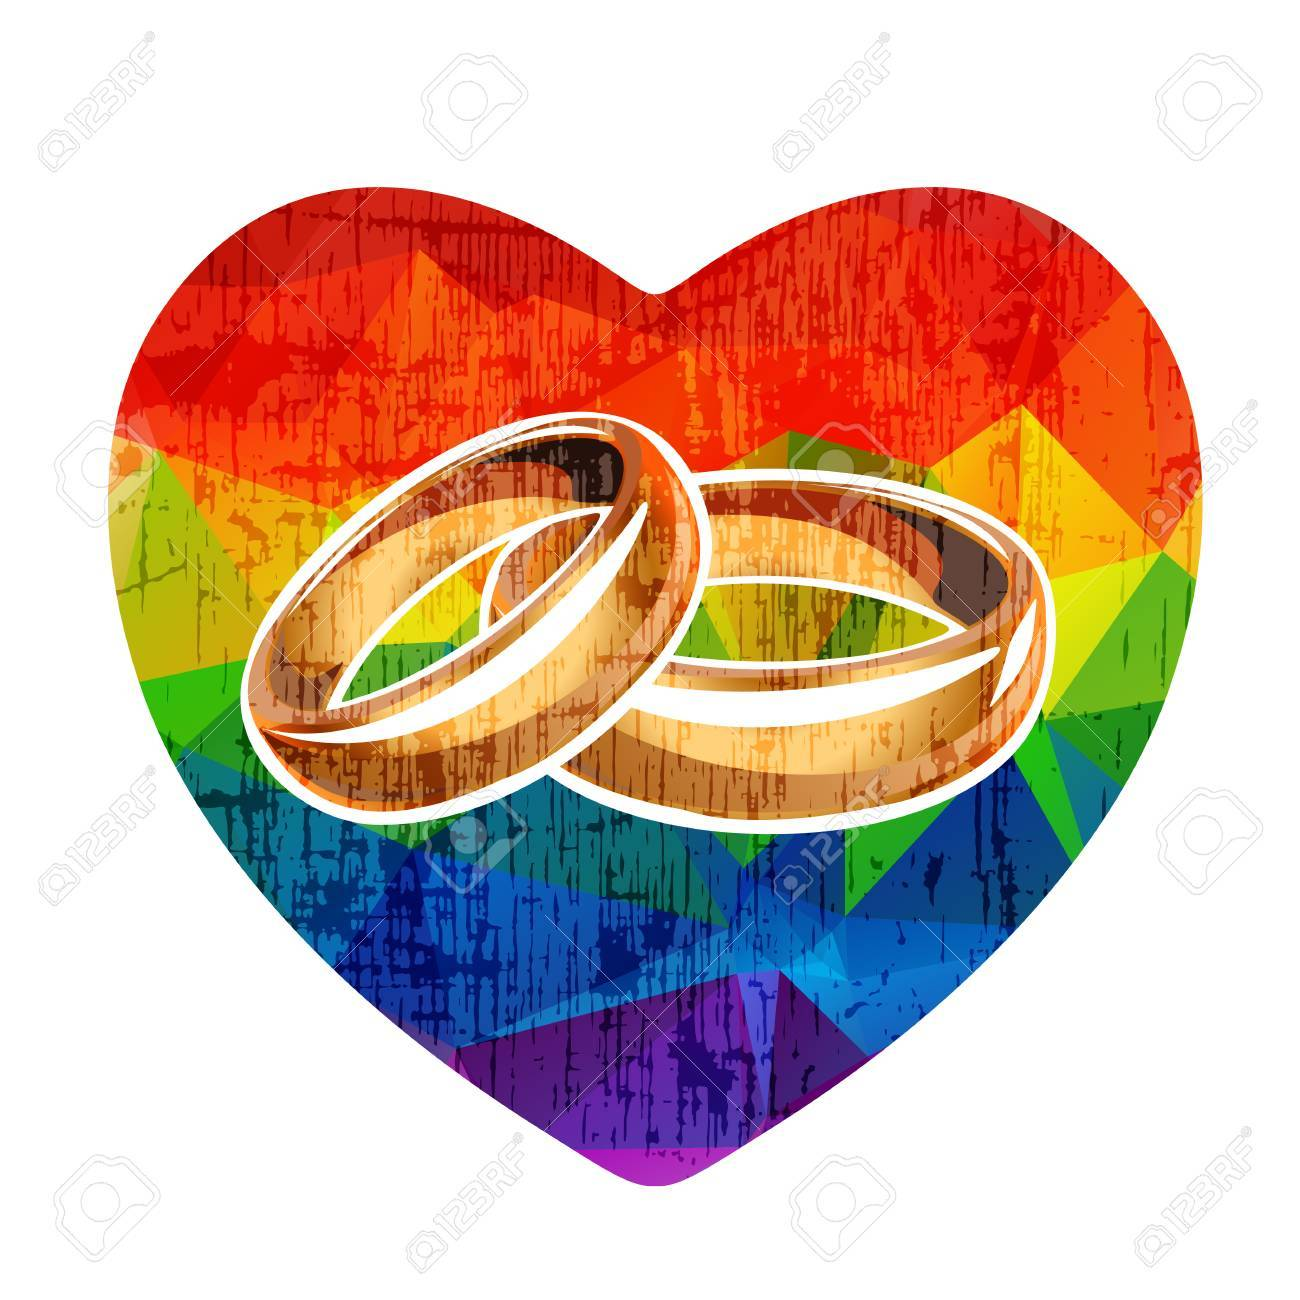 two background lgbt symbol stock royalty vector rainbow rings hd and image on white wedding heart isolated gay